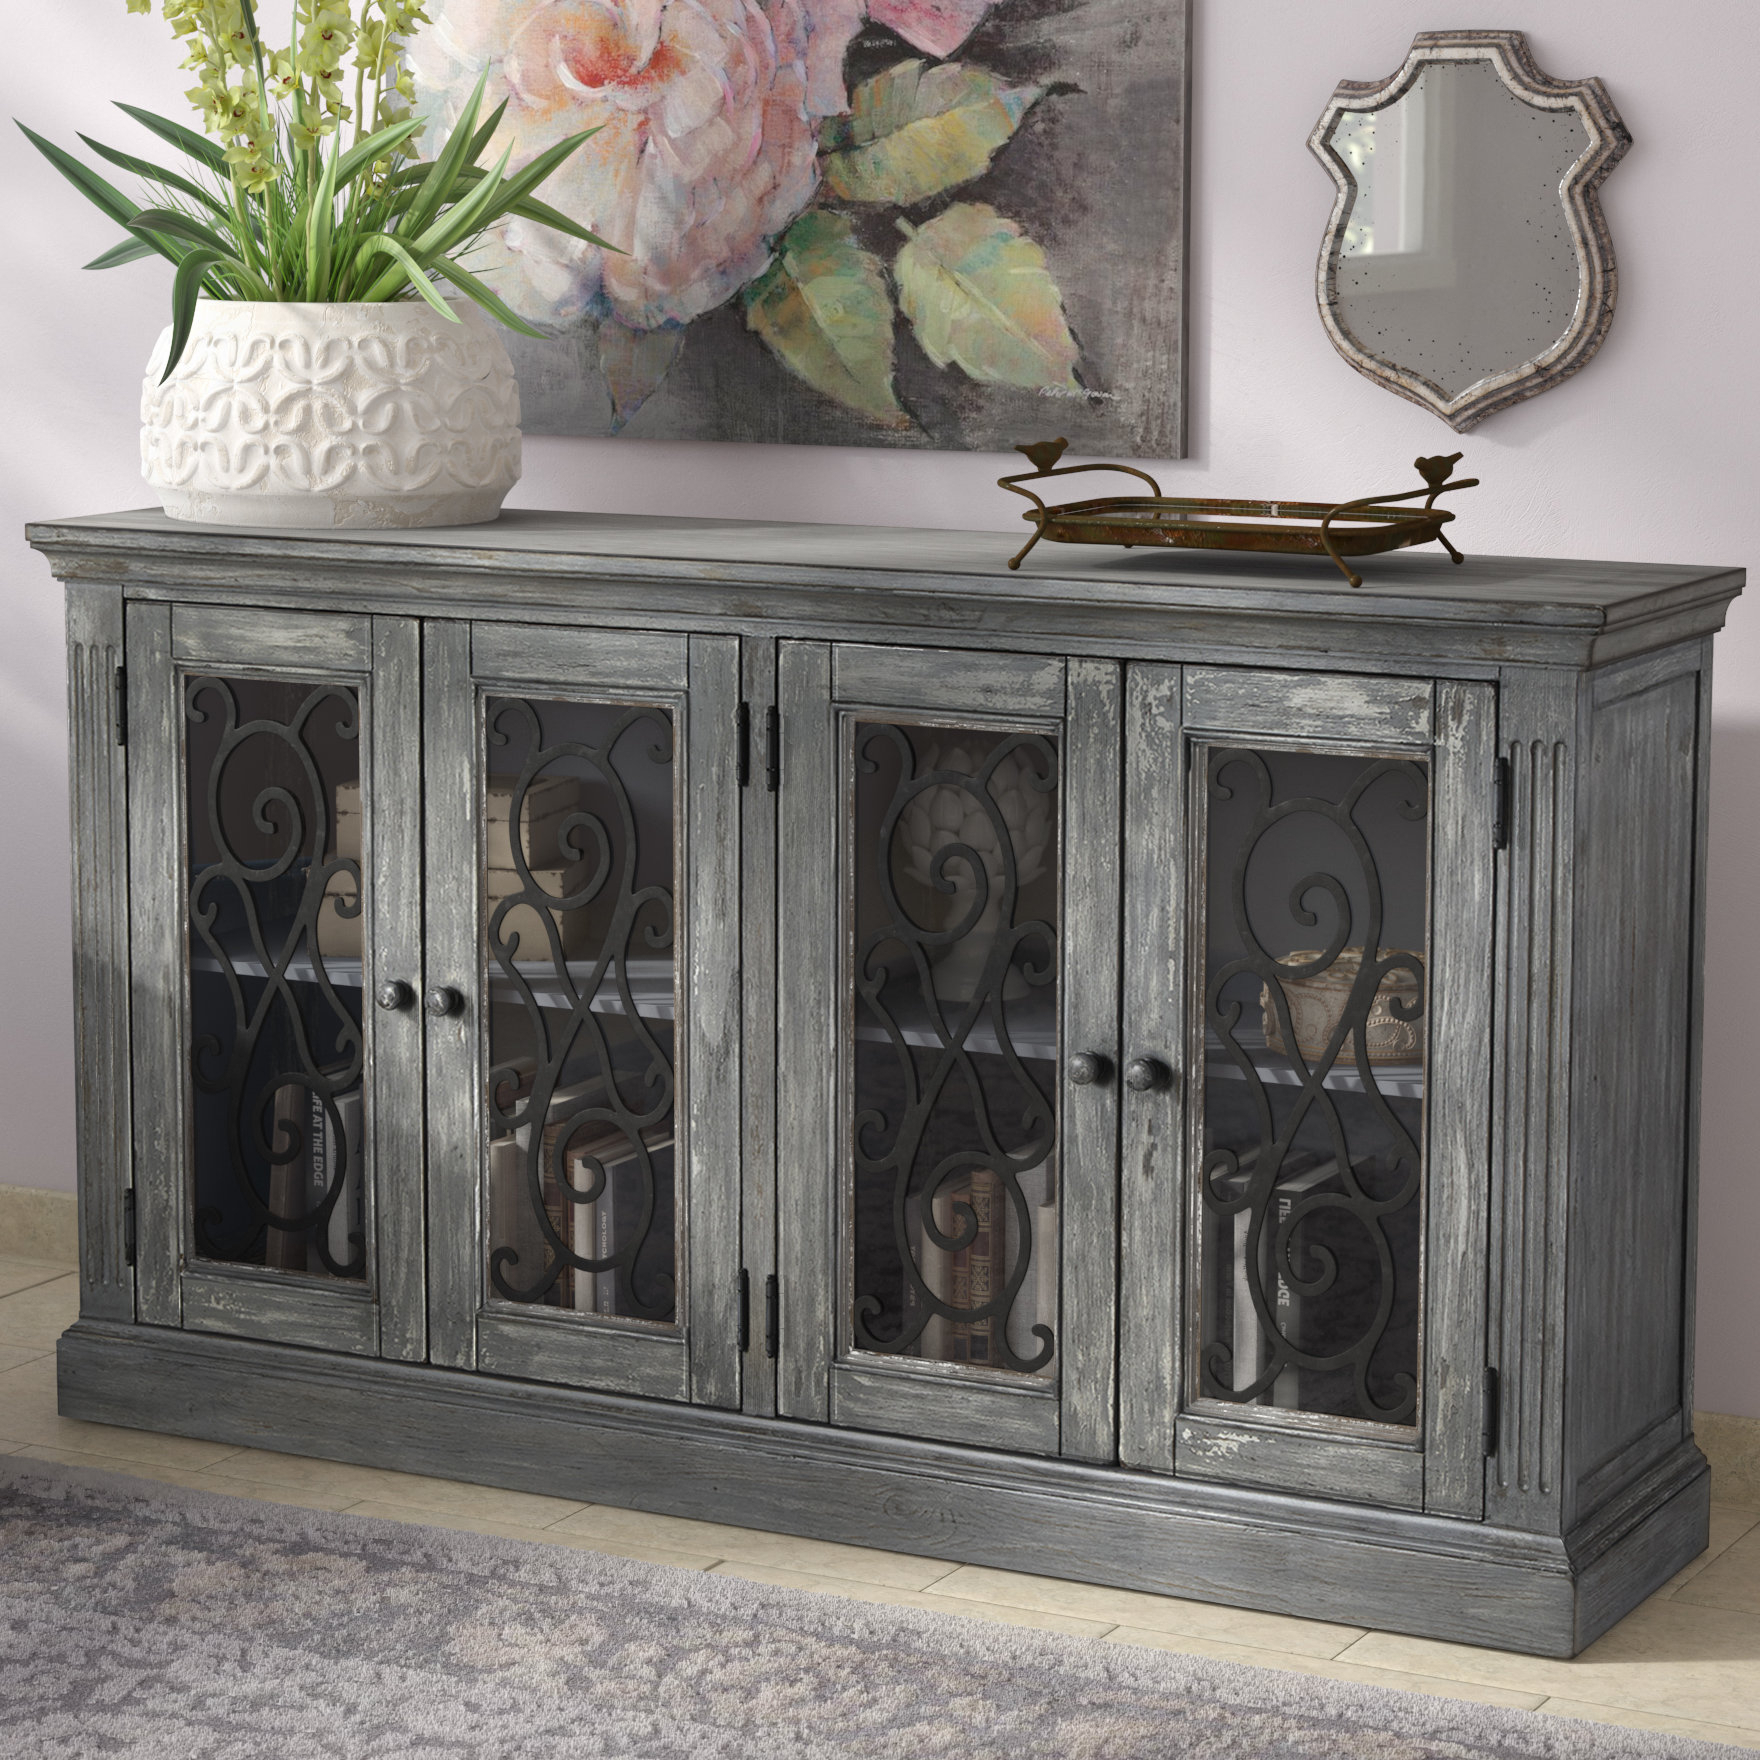 Colombier 4 Door Accent Cabinet intended for Eau Claire 6 Door Accent Cabinets (Image 3 of 30)